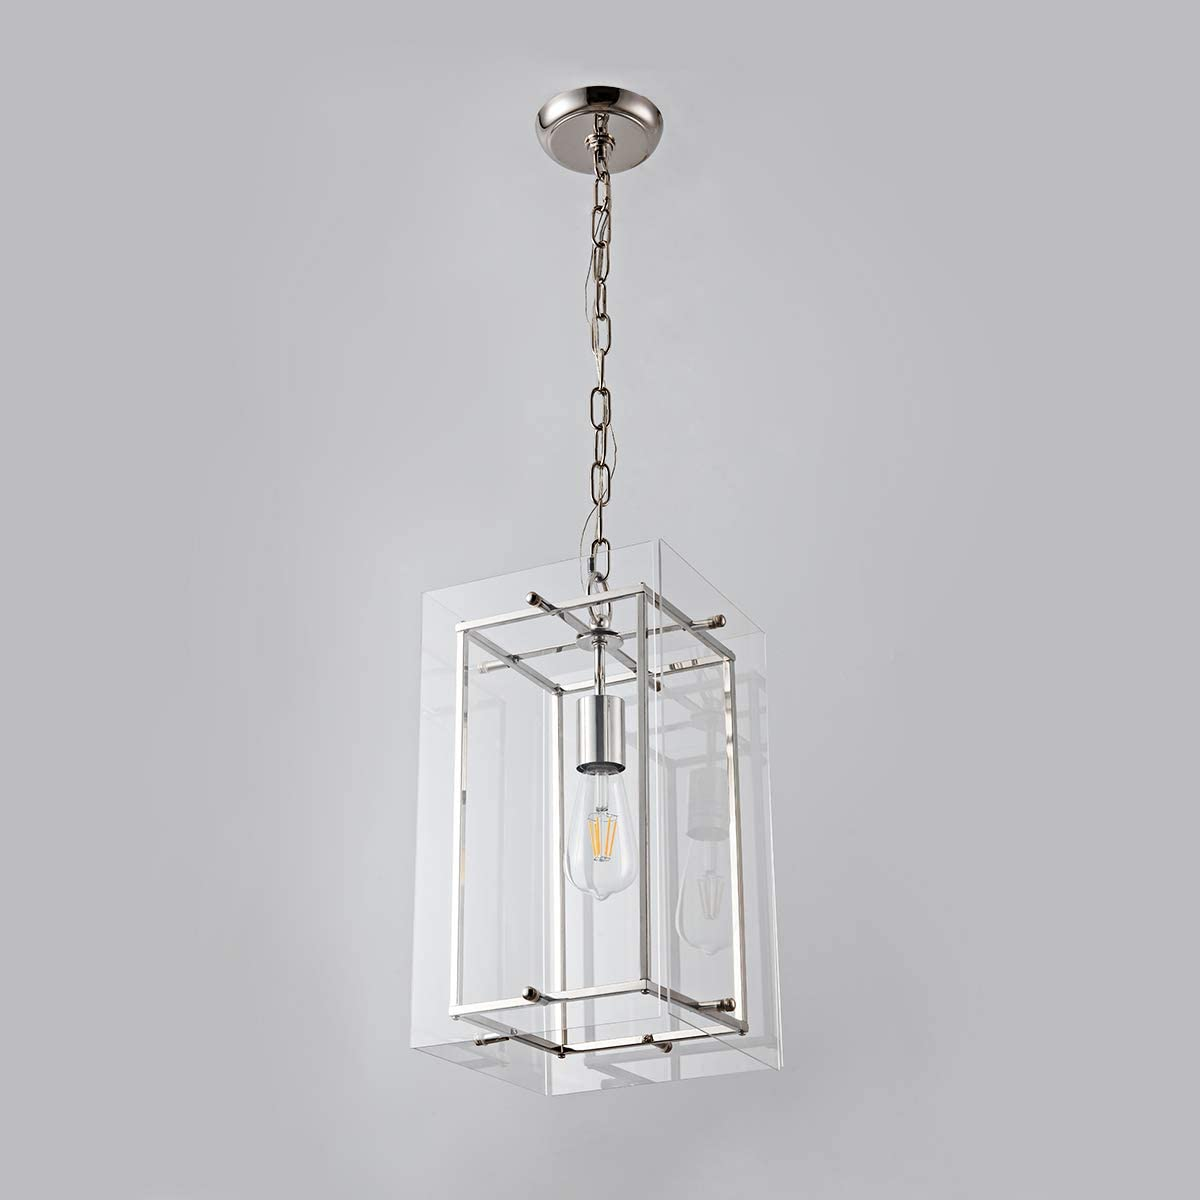 Modern Pendant Light Lantern Chandelier Light Fixtures with Adjustable Chain Contemporary Unique Ceiling Hanging Pendant for Kitchen Island, Dining Room, Farmhouse, Foyer, Entryway Nickel, UL Listed